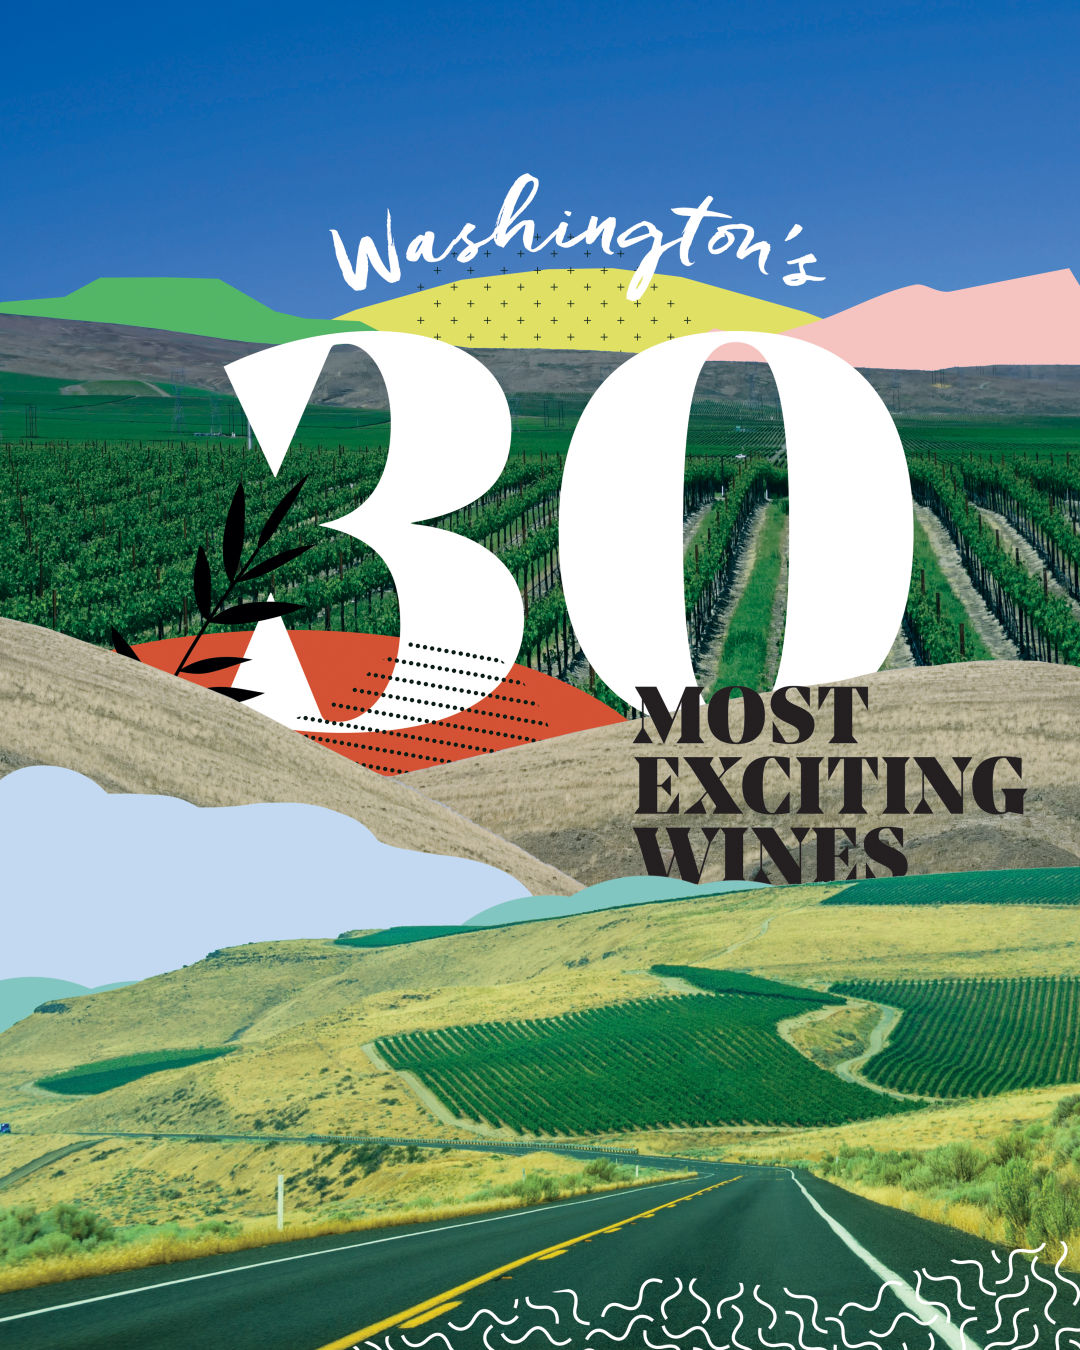 123ba3208aa5f4 The 30 Most Exciting Wines in Washington | Seattle Met